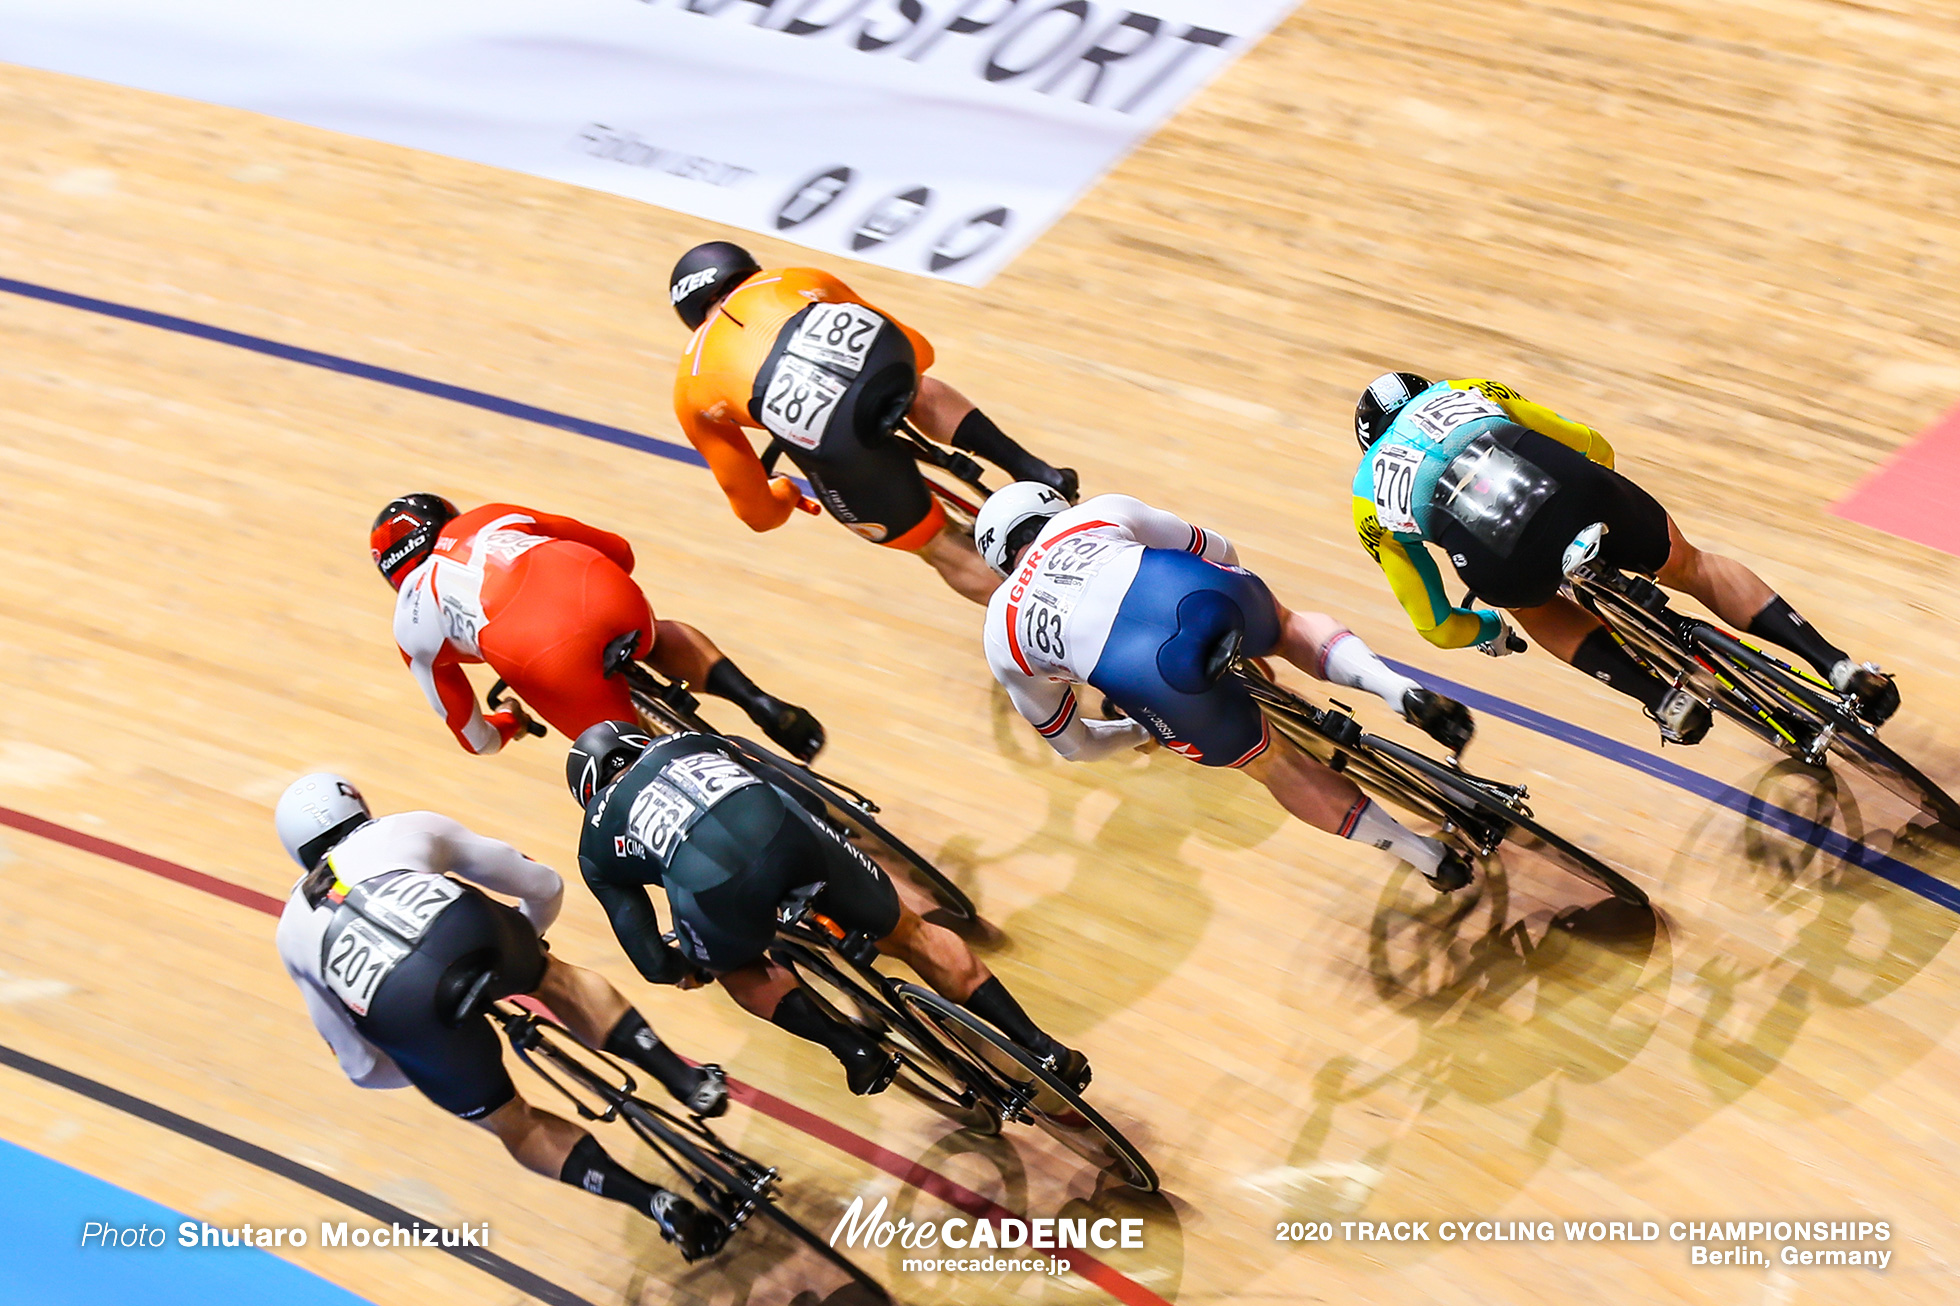 Final / Men's Keirin / 2020 Track Cycling World Championships